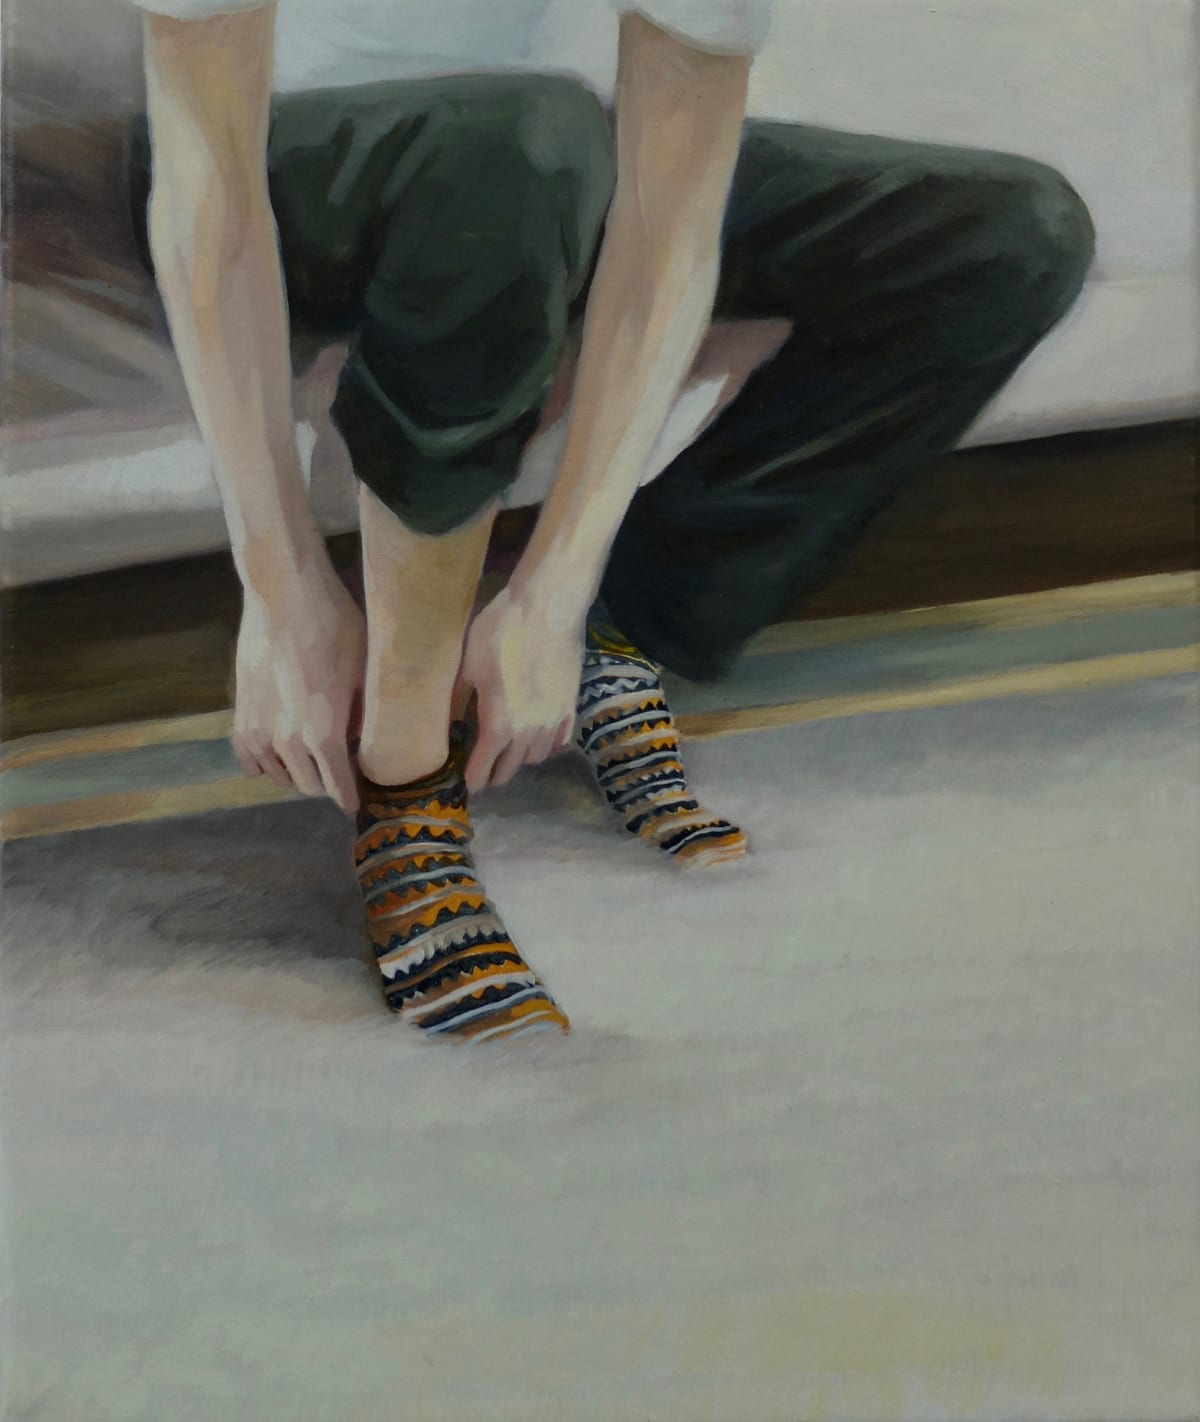 Grace O'Connor Disrupted stripe, 2015 Oil on canvas. Signed on verso 25.5 x 30.5 cm